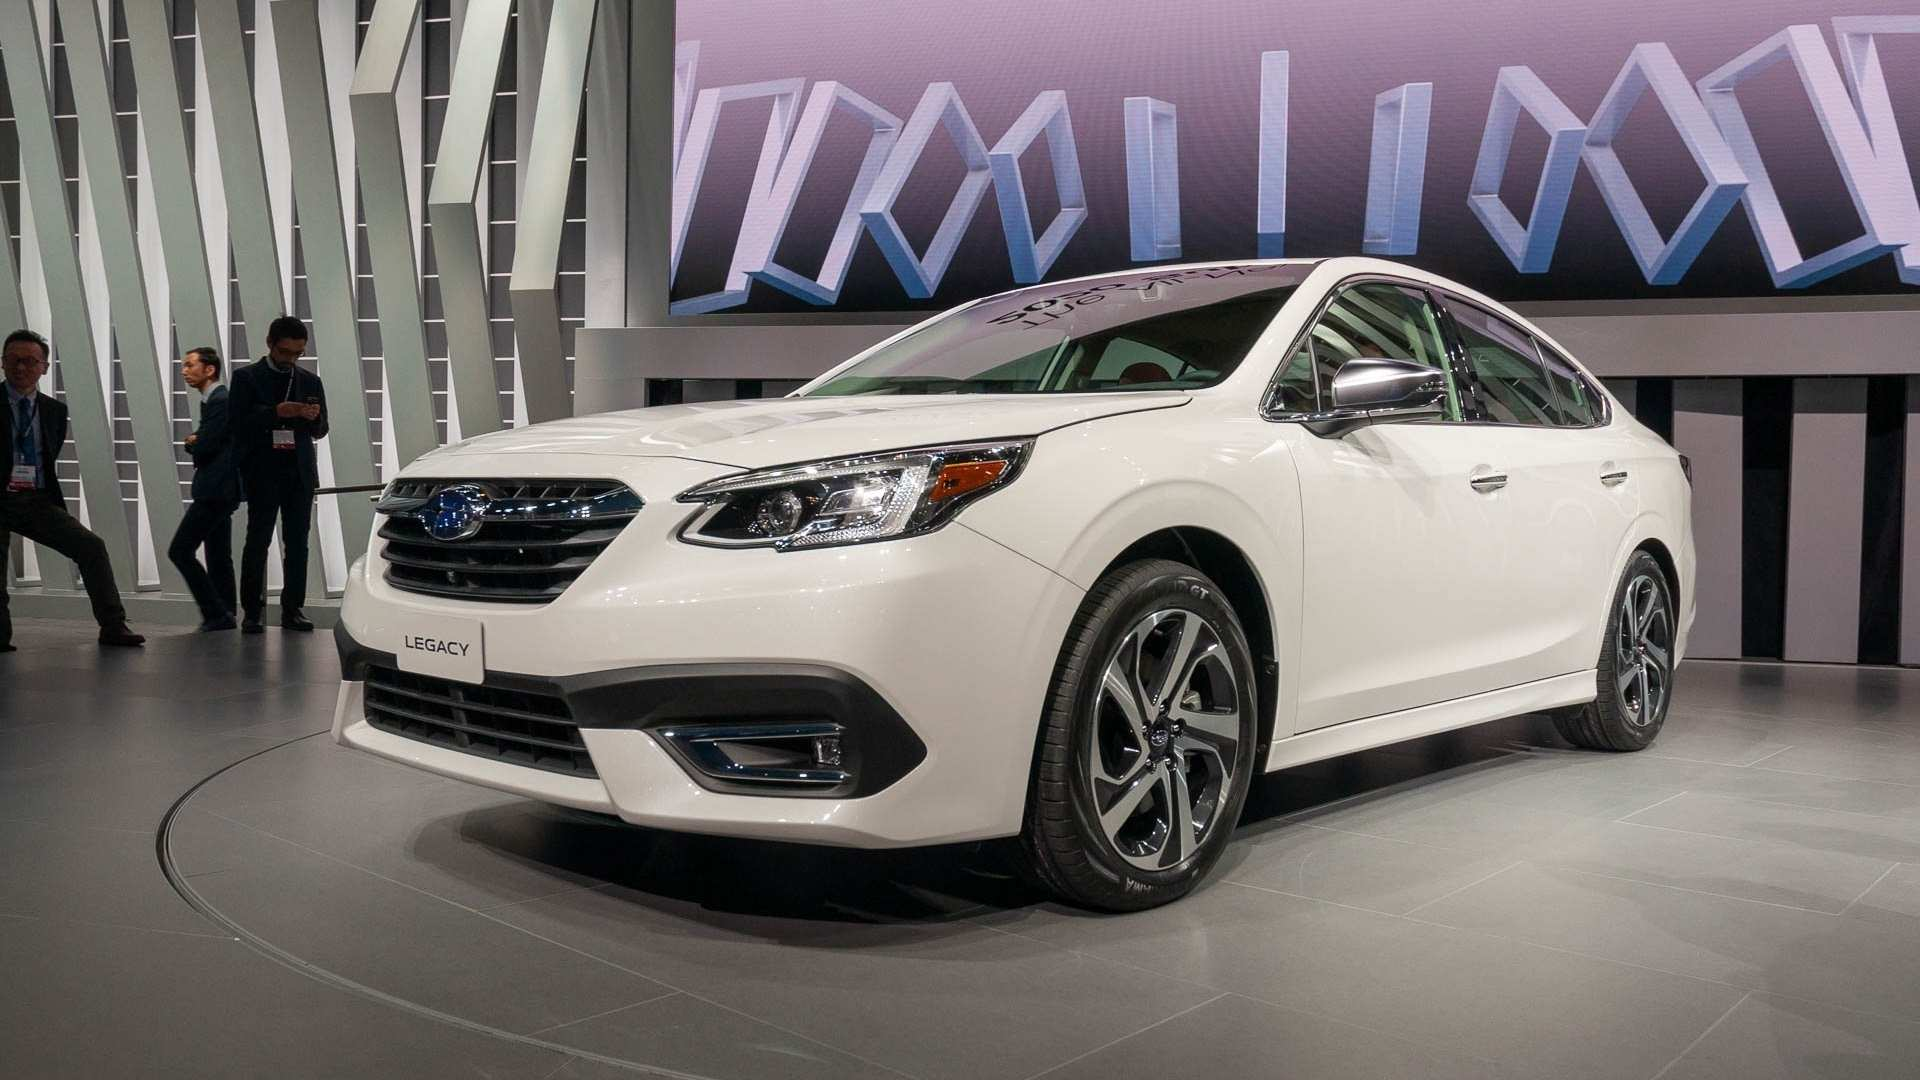 45 Best Subaru Impreza 2020 Refresh Engine